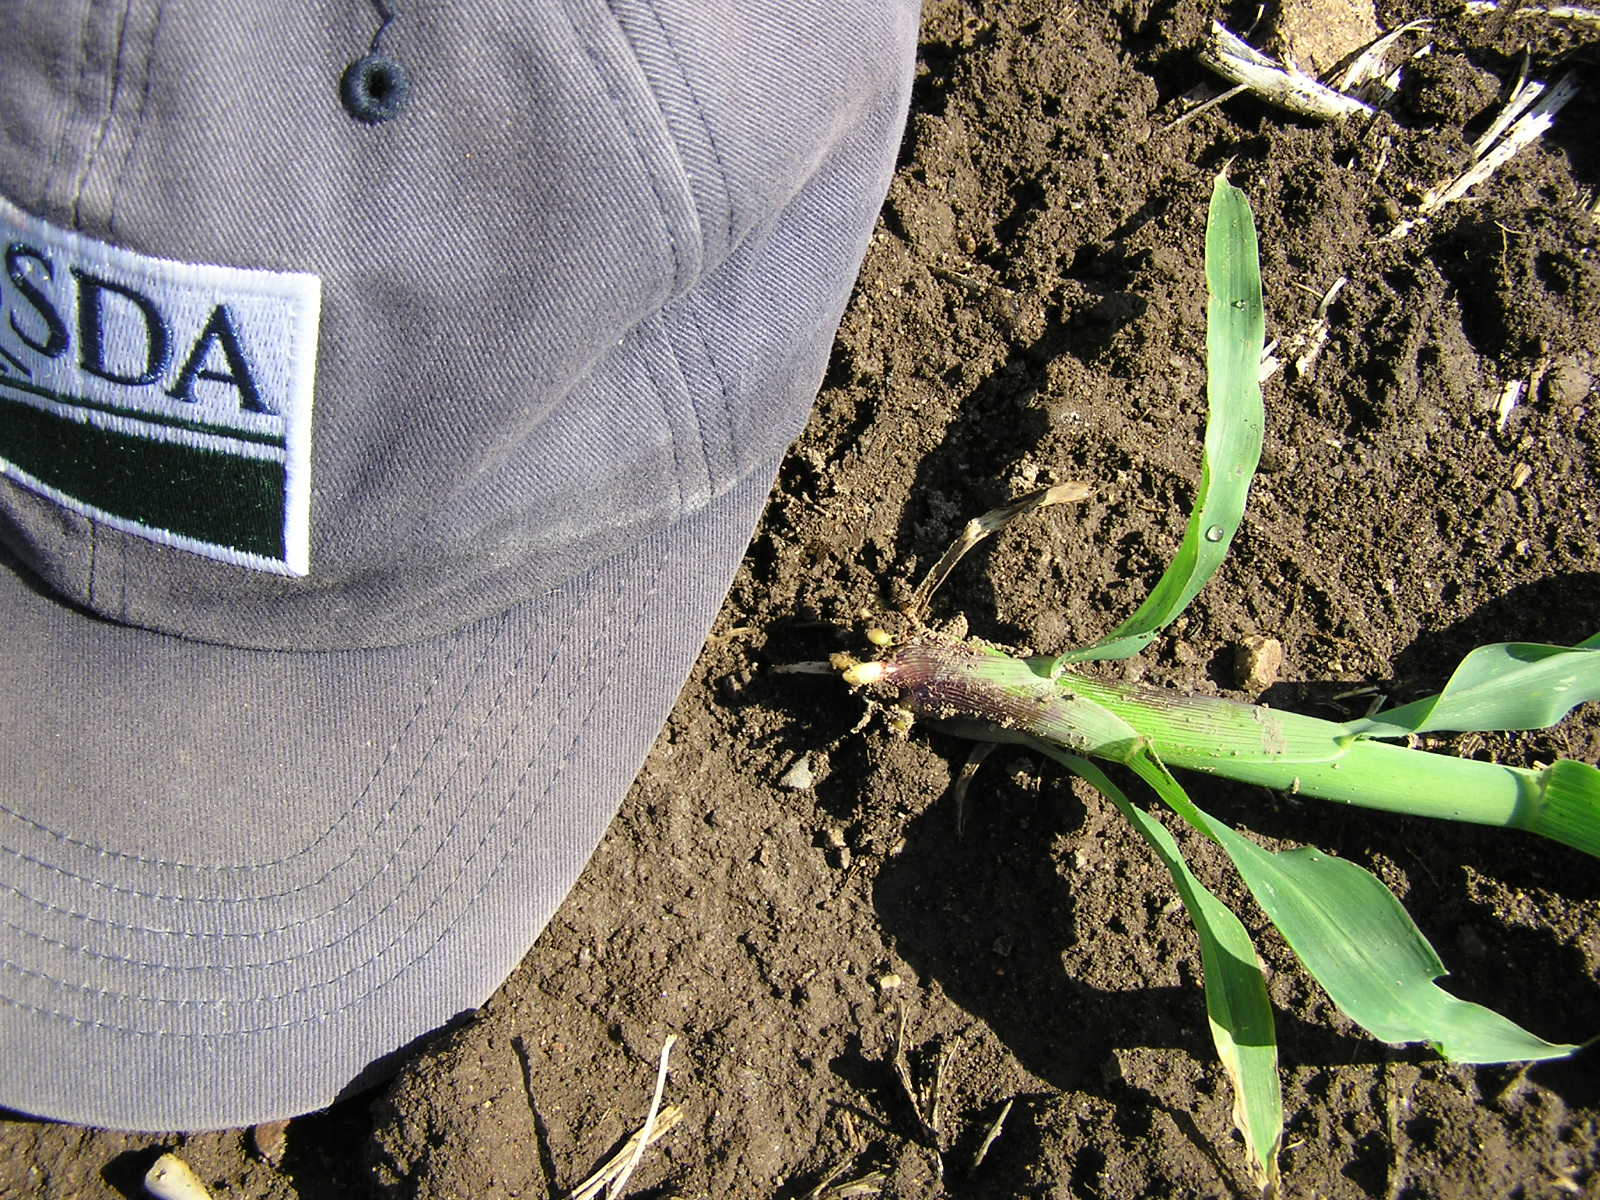 Cranes will pull out seedlings to eat the seed and leave the stalk and leaves.